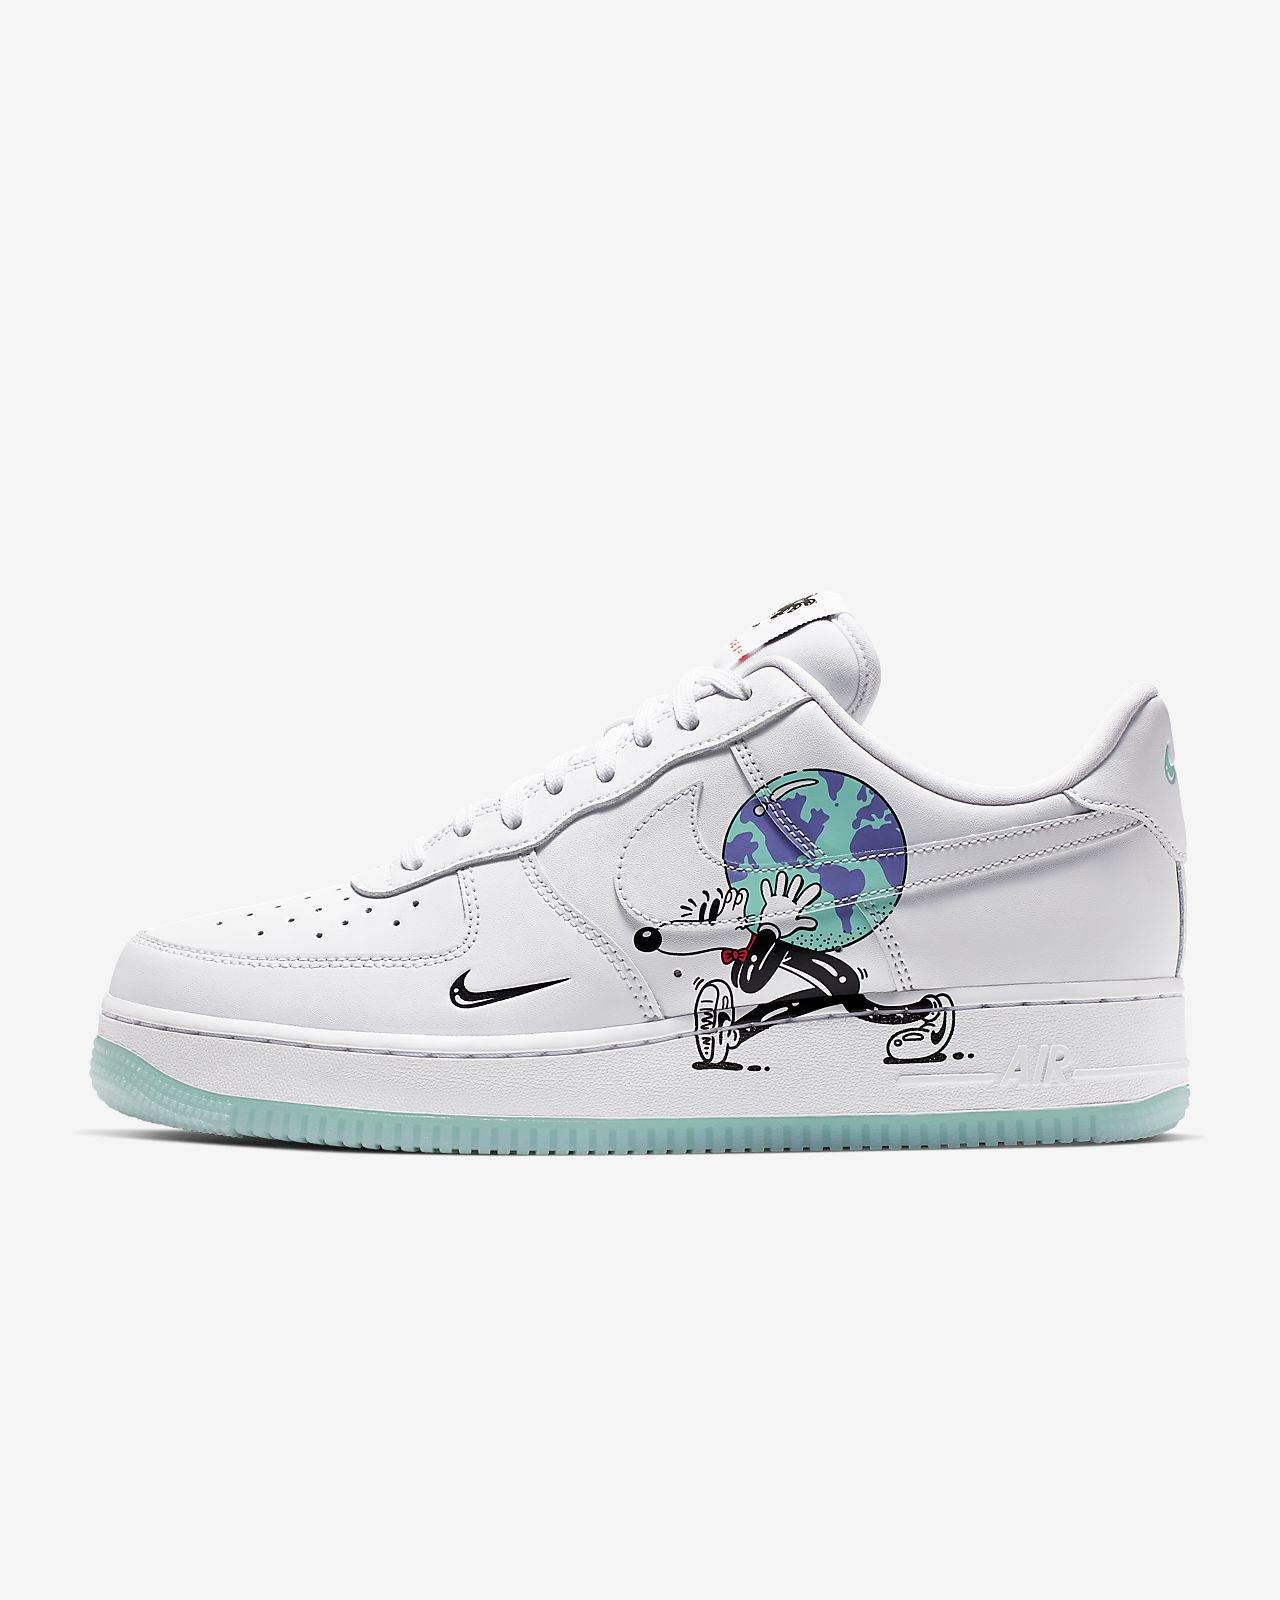 the latest 551c1 bfb5d Scarpa Nike Air Force 1 QA FlyLeather con almeno il 50% di fibre di pelle